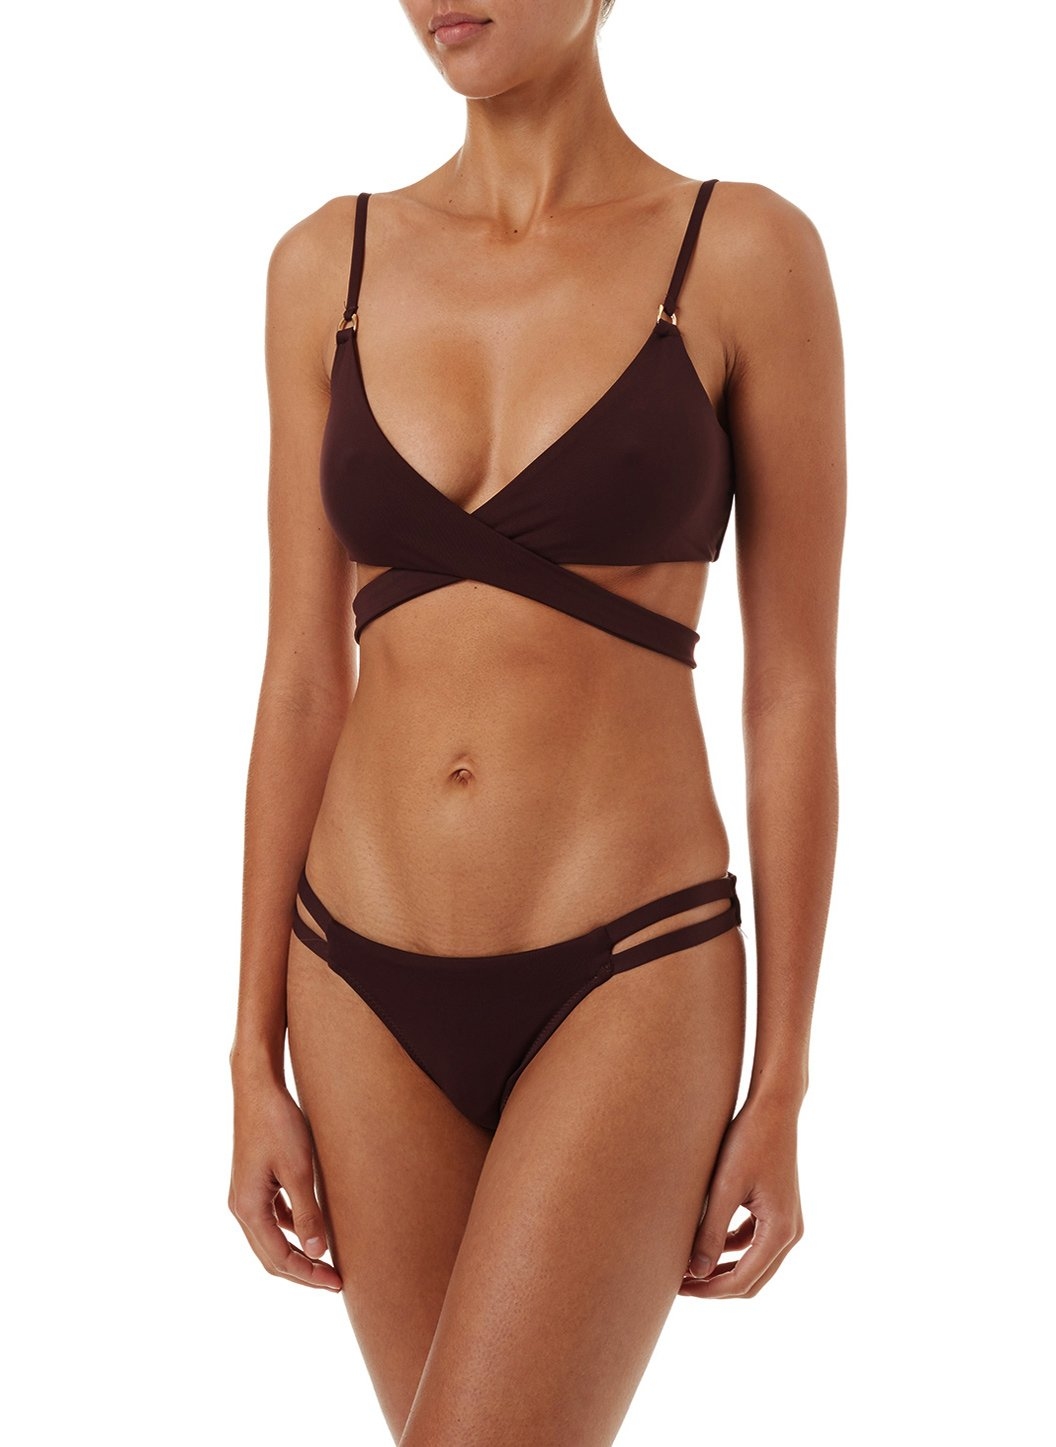 indonesia walnut overtheshoulder wrap bikini 2019 F